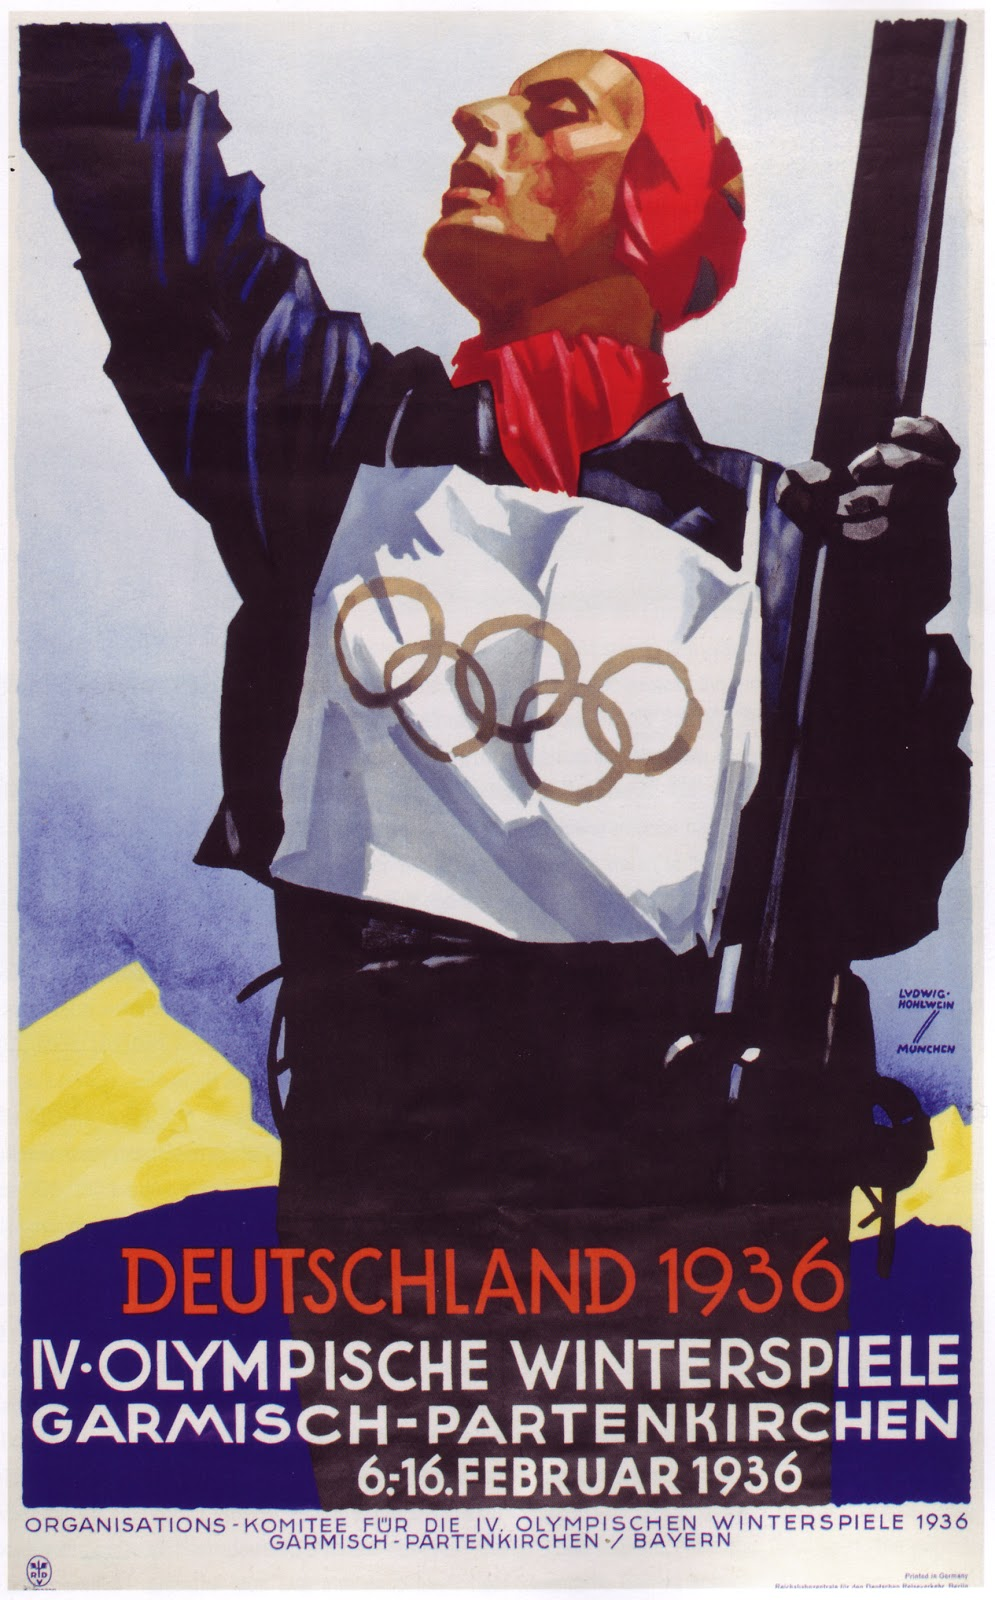 1936-Winter-Olympic-Games-Germany-Garmisch-Partenkirchen1